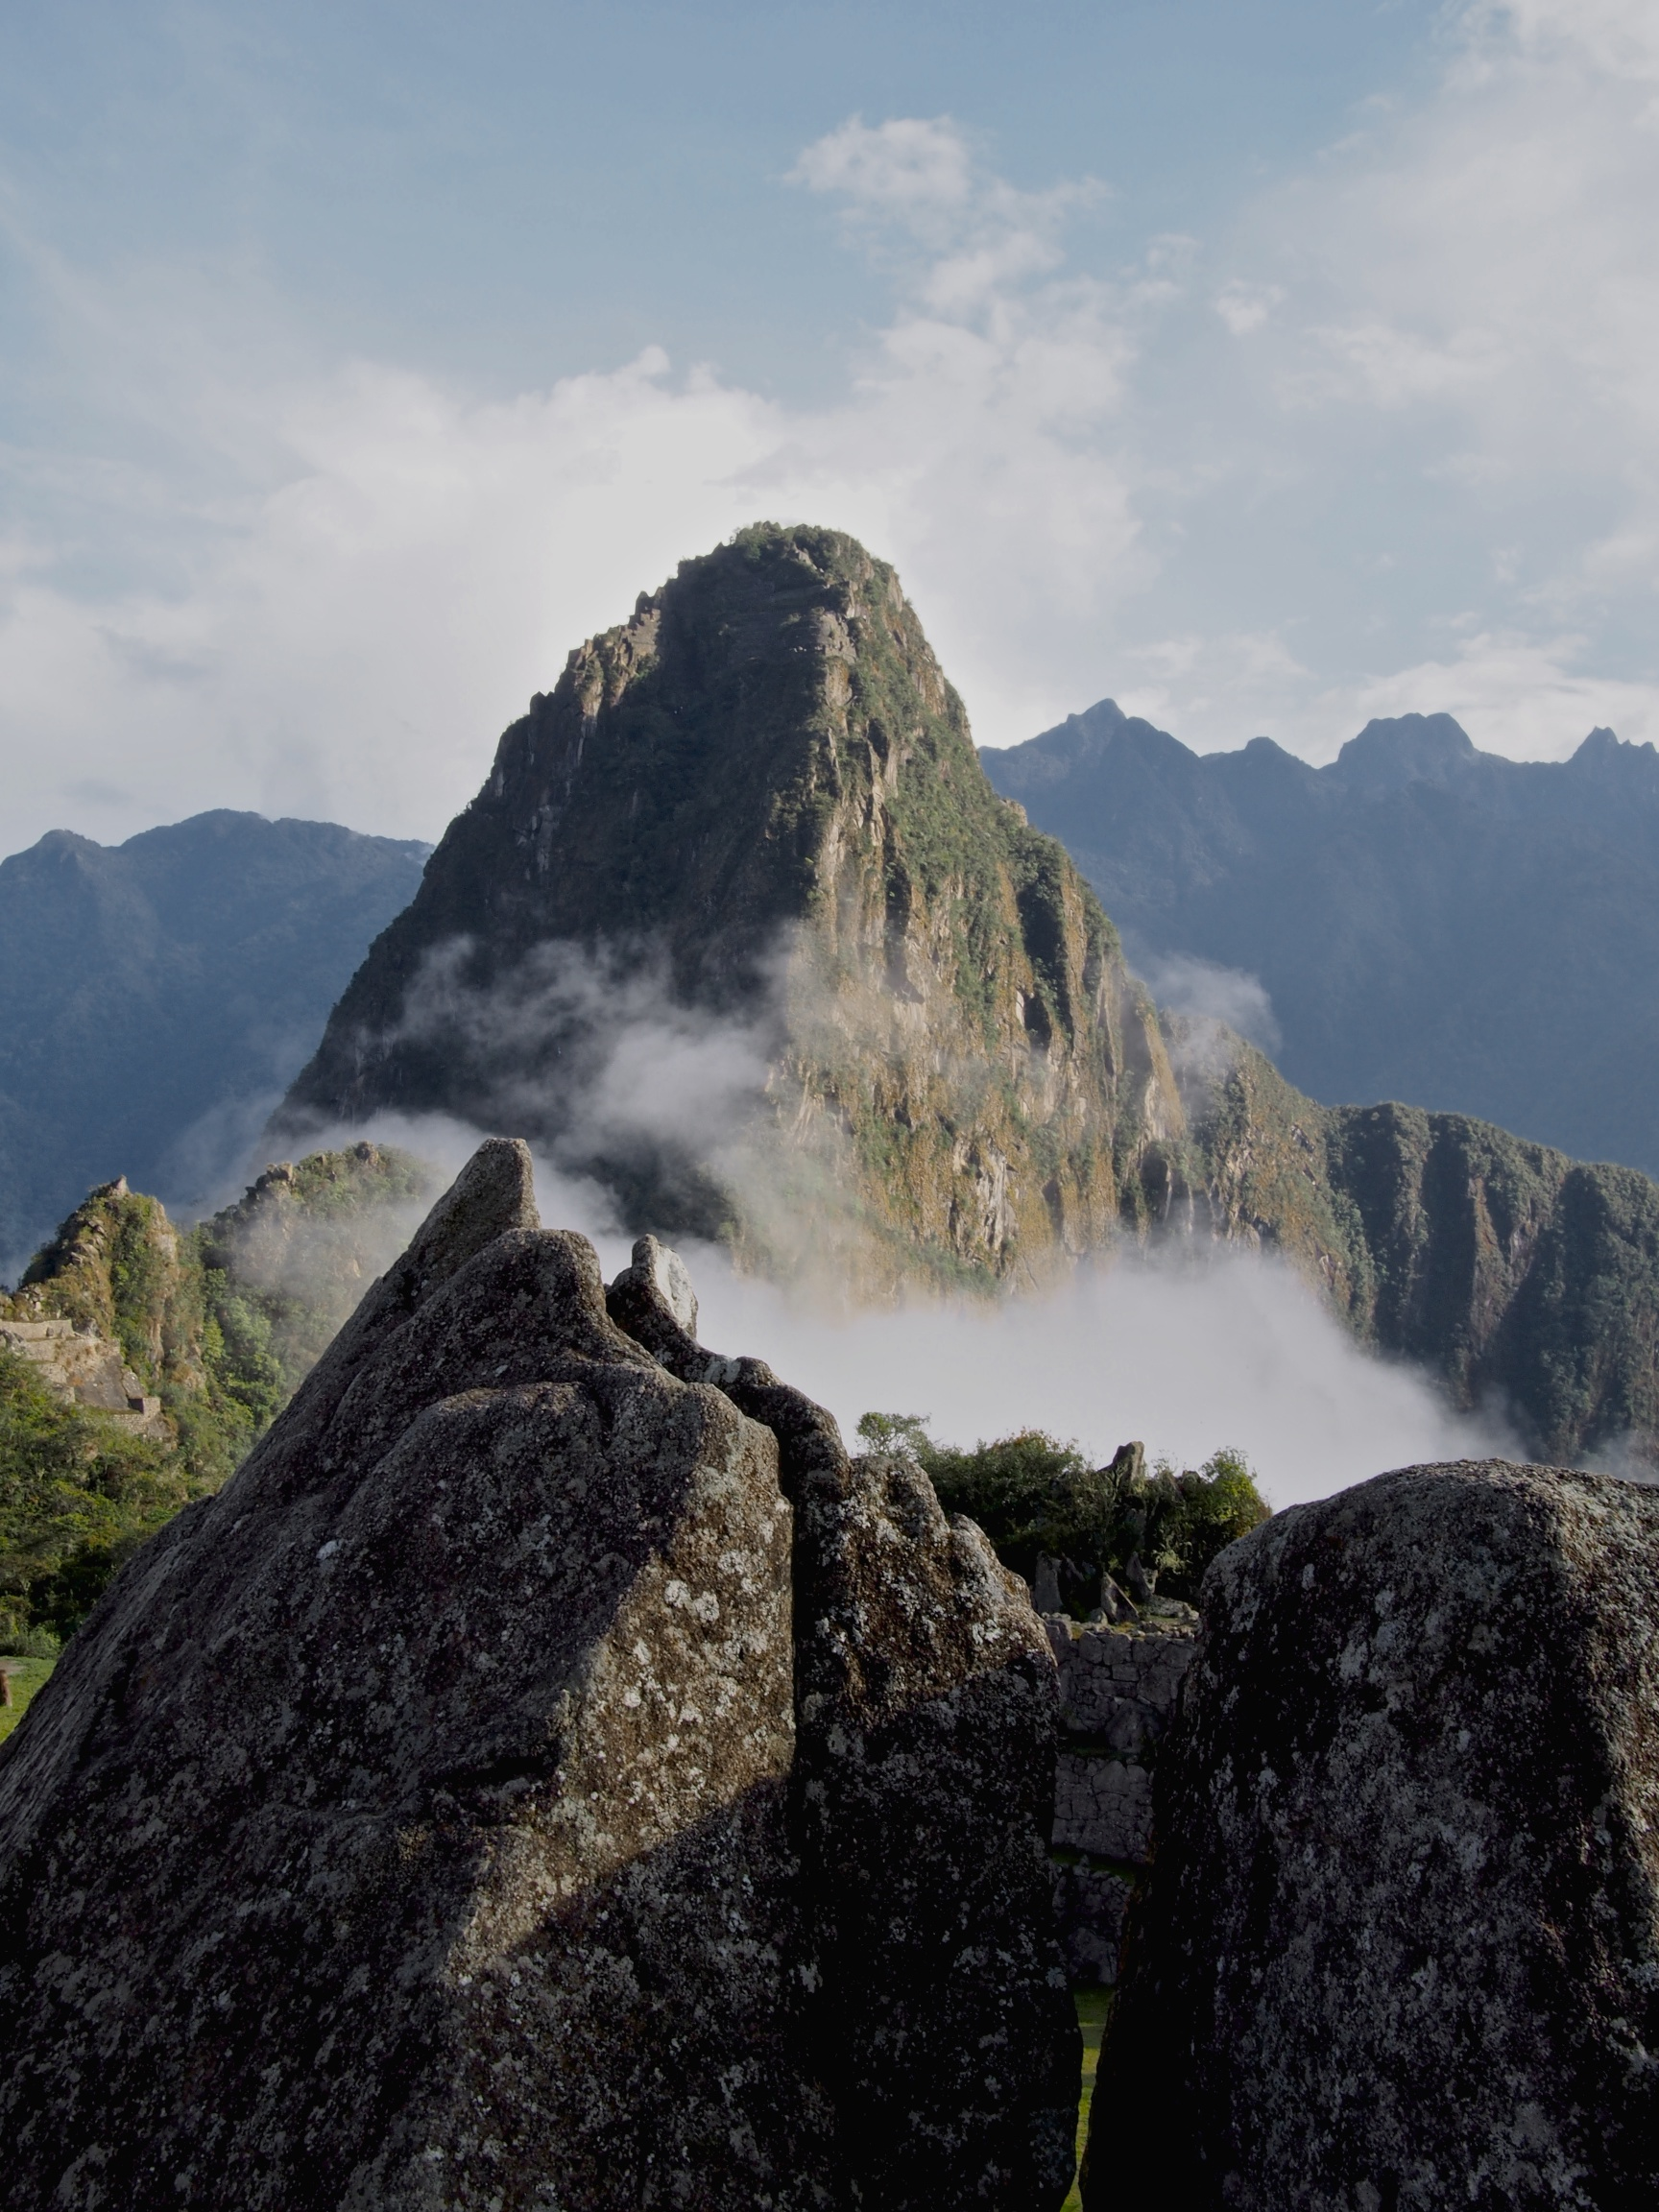 Rock formation which mirrors the actual landscape with Wayna Picchu (also seen in the background) and the river that runs alongside of it